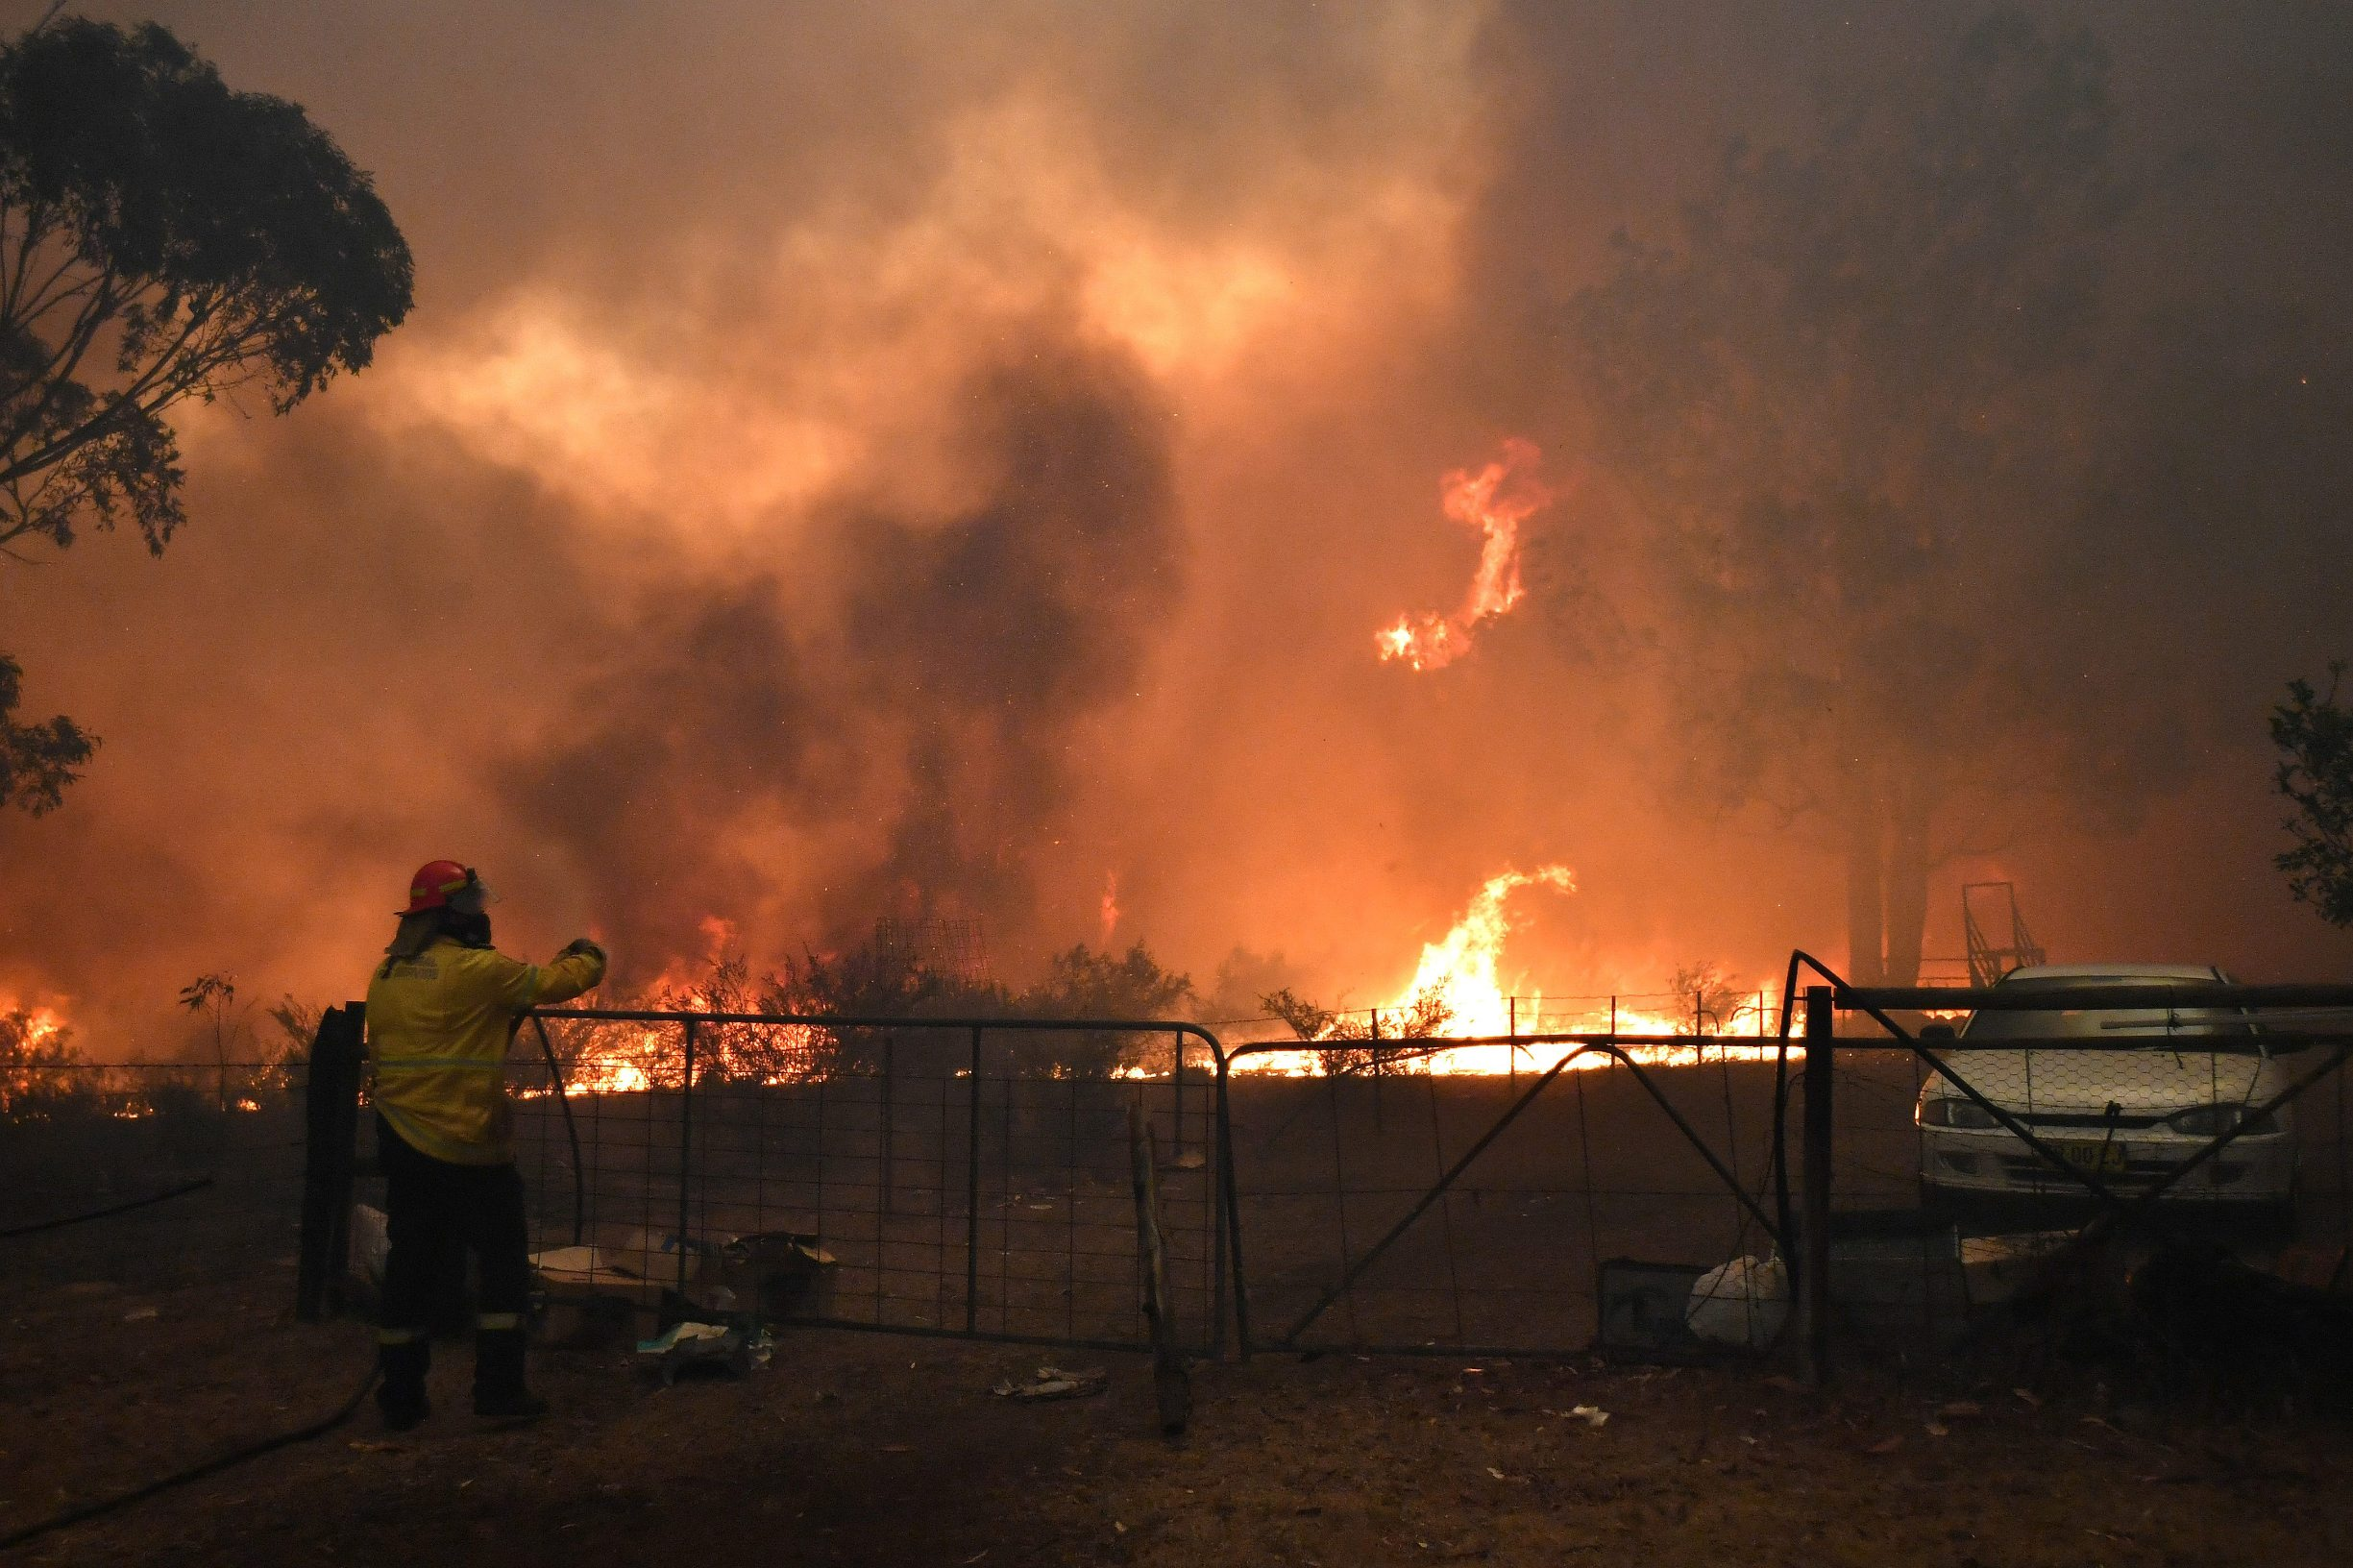 Rural Fire Service (RFS) crews engage in property protection of a number of homes along the Old Hume Highway near the town of Tahmoor as the Green Wattle Creek Fire threatens a number of communities in the southwest of Sydney, Australia, December 19, 2019. AAP Image/Dean Lewins/via REUTERS ATTENTION EDITORS - THIS IMAGE HAS BEEN SUPPLIED BY A THIRD PARTY. NO RESALES. NO ARCHIVES. AUSTRALIA OUT. NEW ZEALAND OUT.